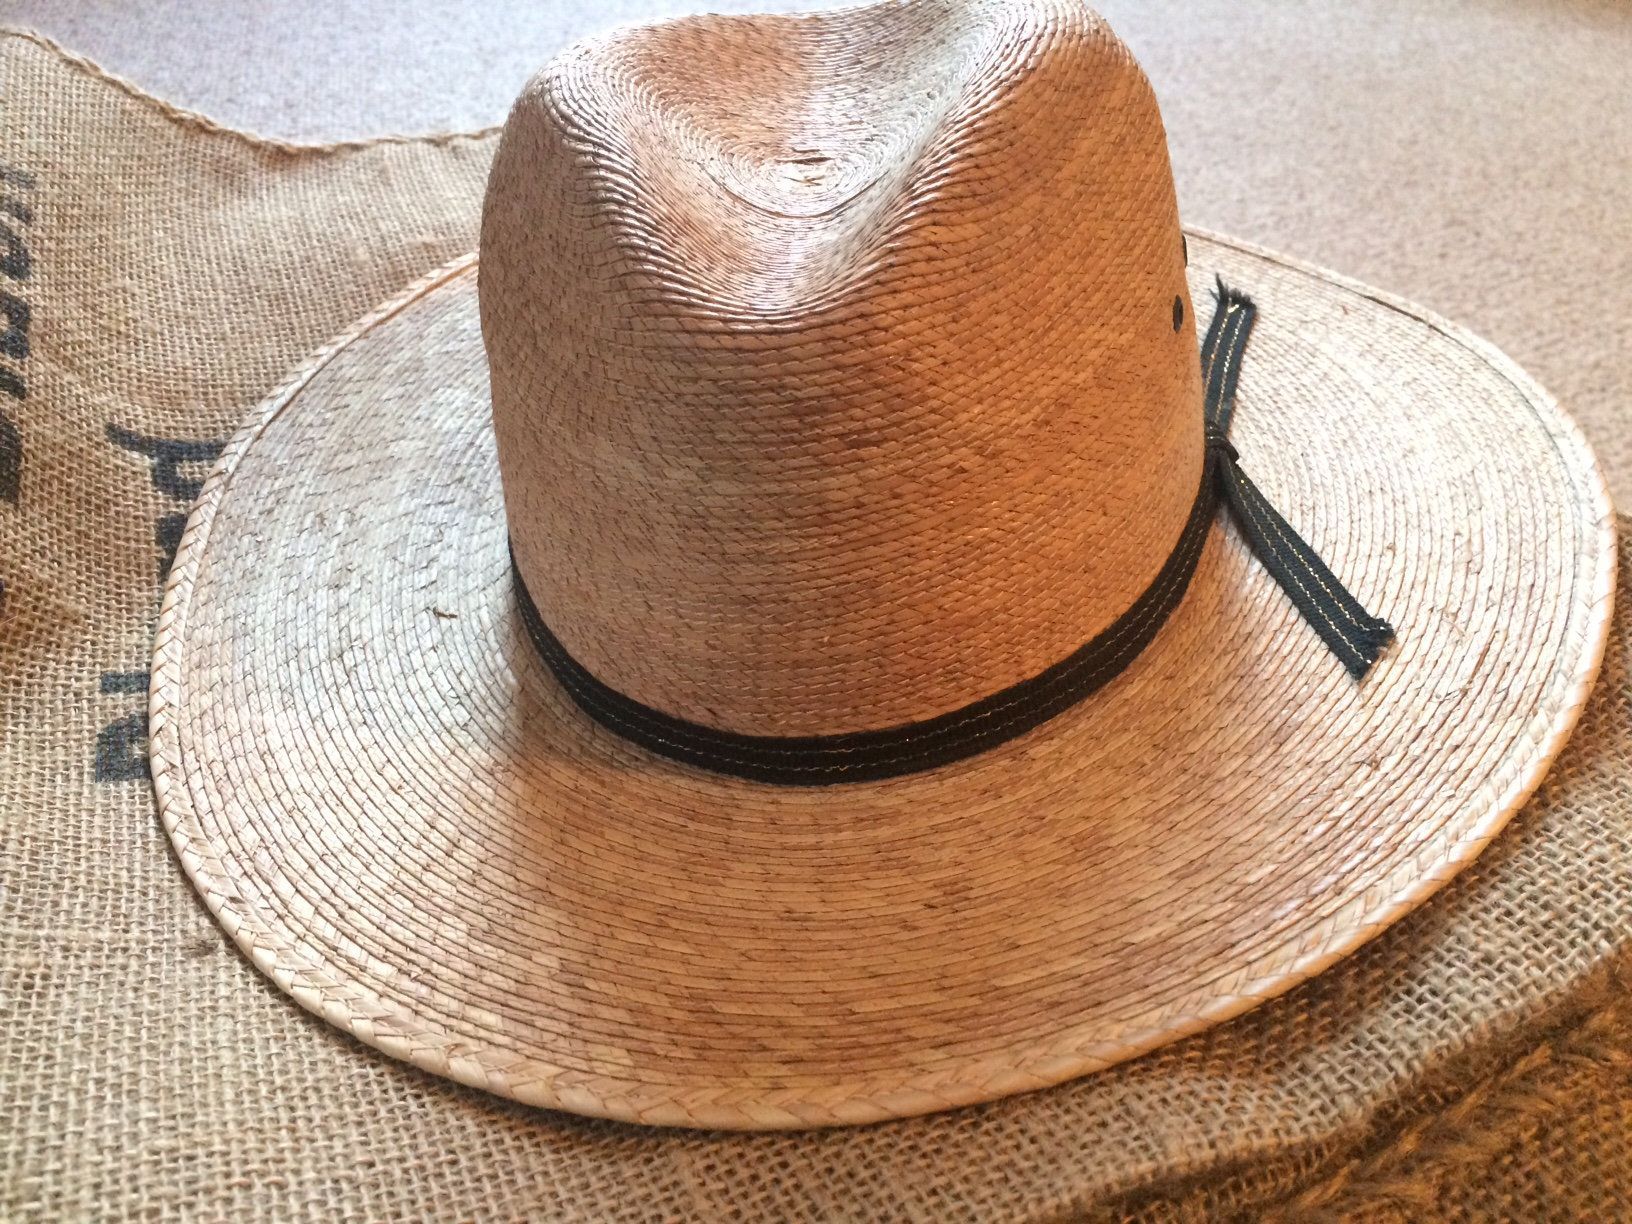 Vintage Mexico Hat Tightly Woven Straw Hat Made In Mexico Etsy Hat Making Straw Hat Hats